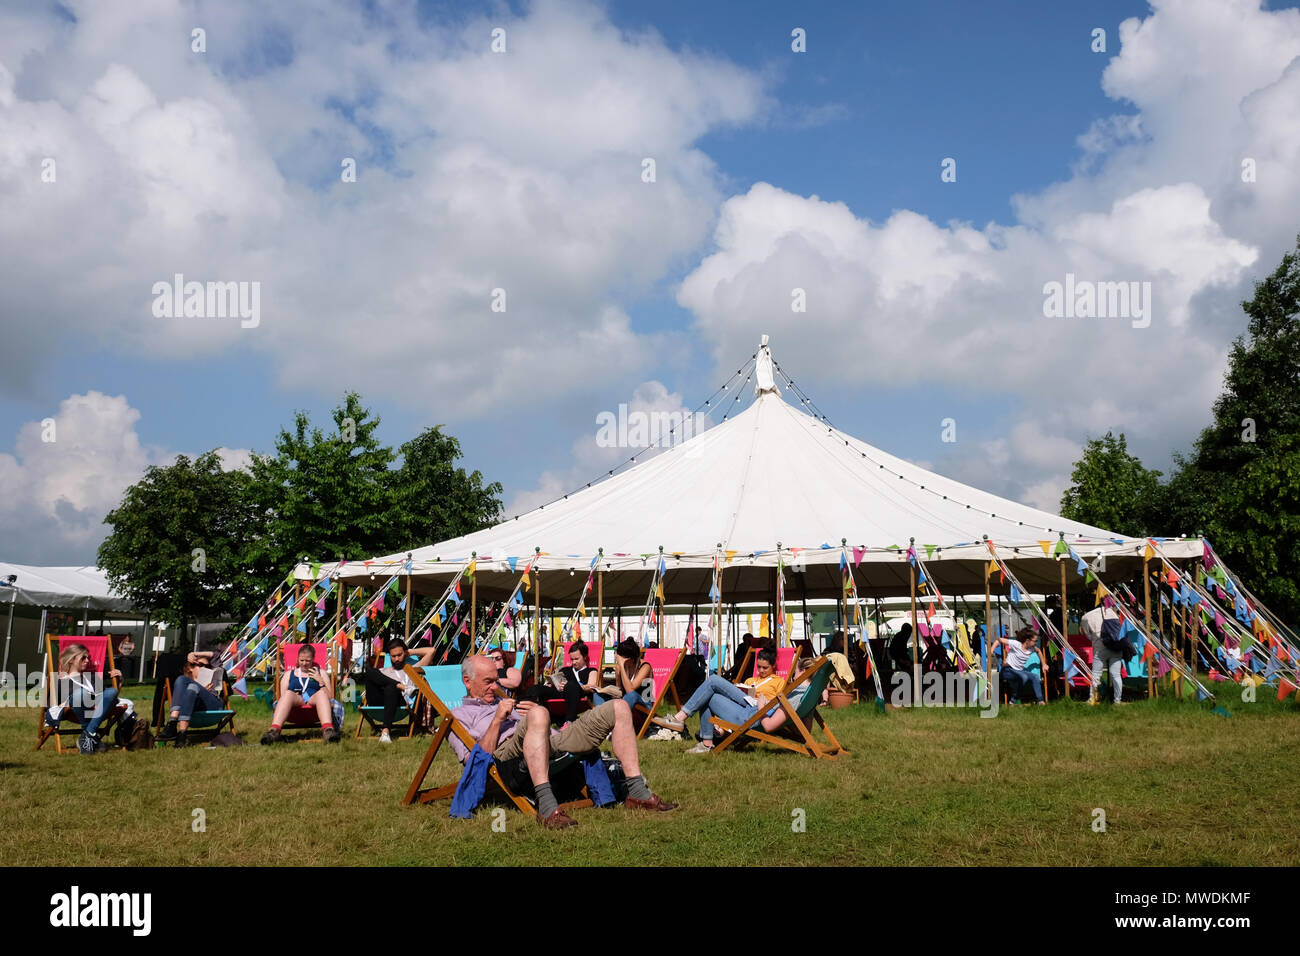 Hay Festival, Hay on Wye, UK - Friday 1st June 2018 -  The sun shines onto the Hay Festival lawns this morning on the first day of the meteorological summer - Photo Steven May / Alamy Live News - Stock Image